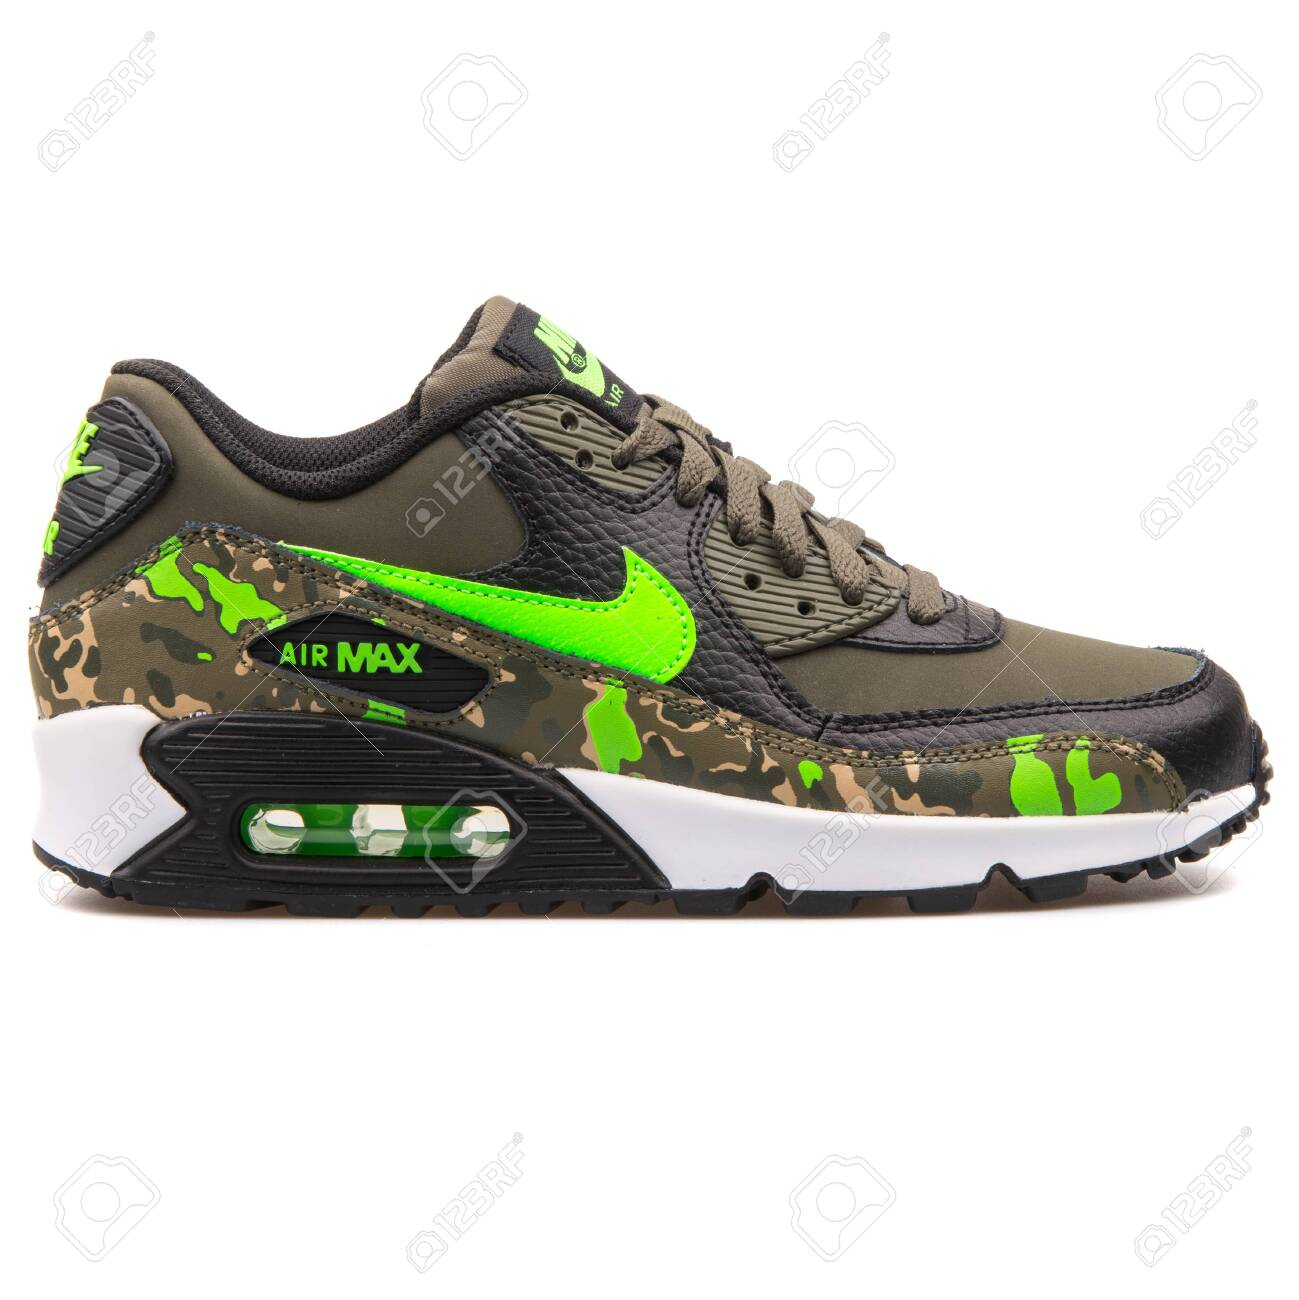 buy popular 0e57a 2a27c VIENNA, AUSTRIA - AUGUST 25, 2017: Nike Air Max 90 Premium Leather..